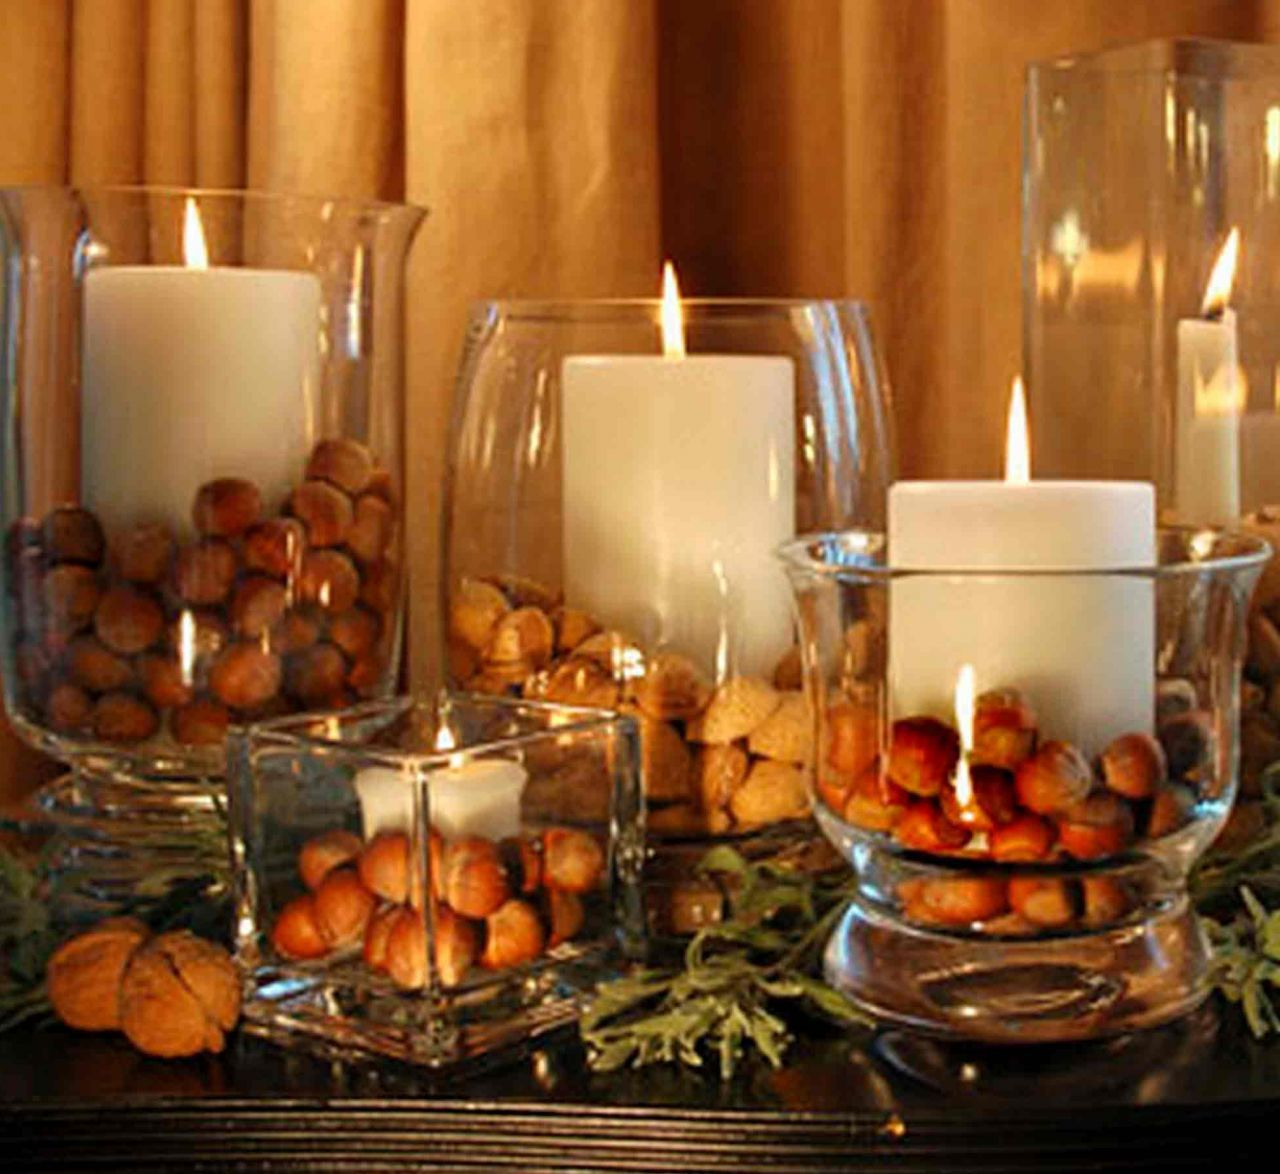 Dinner Party Centerpiece Ideas Part - 50: Fall Decorations For Dinner Party Centerpiece